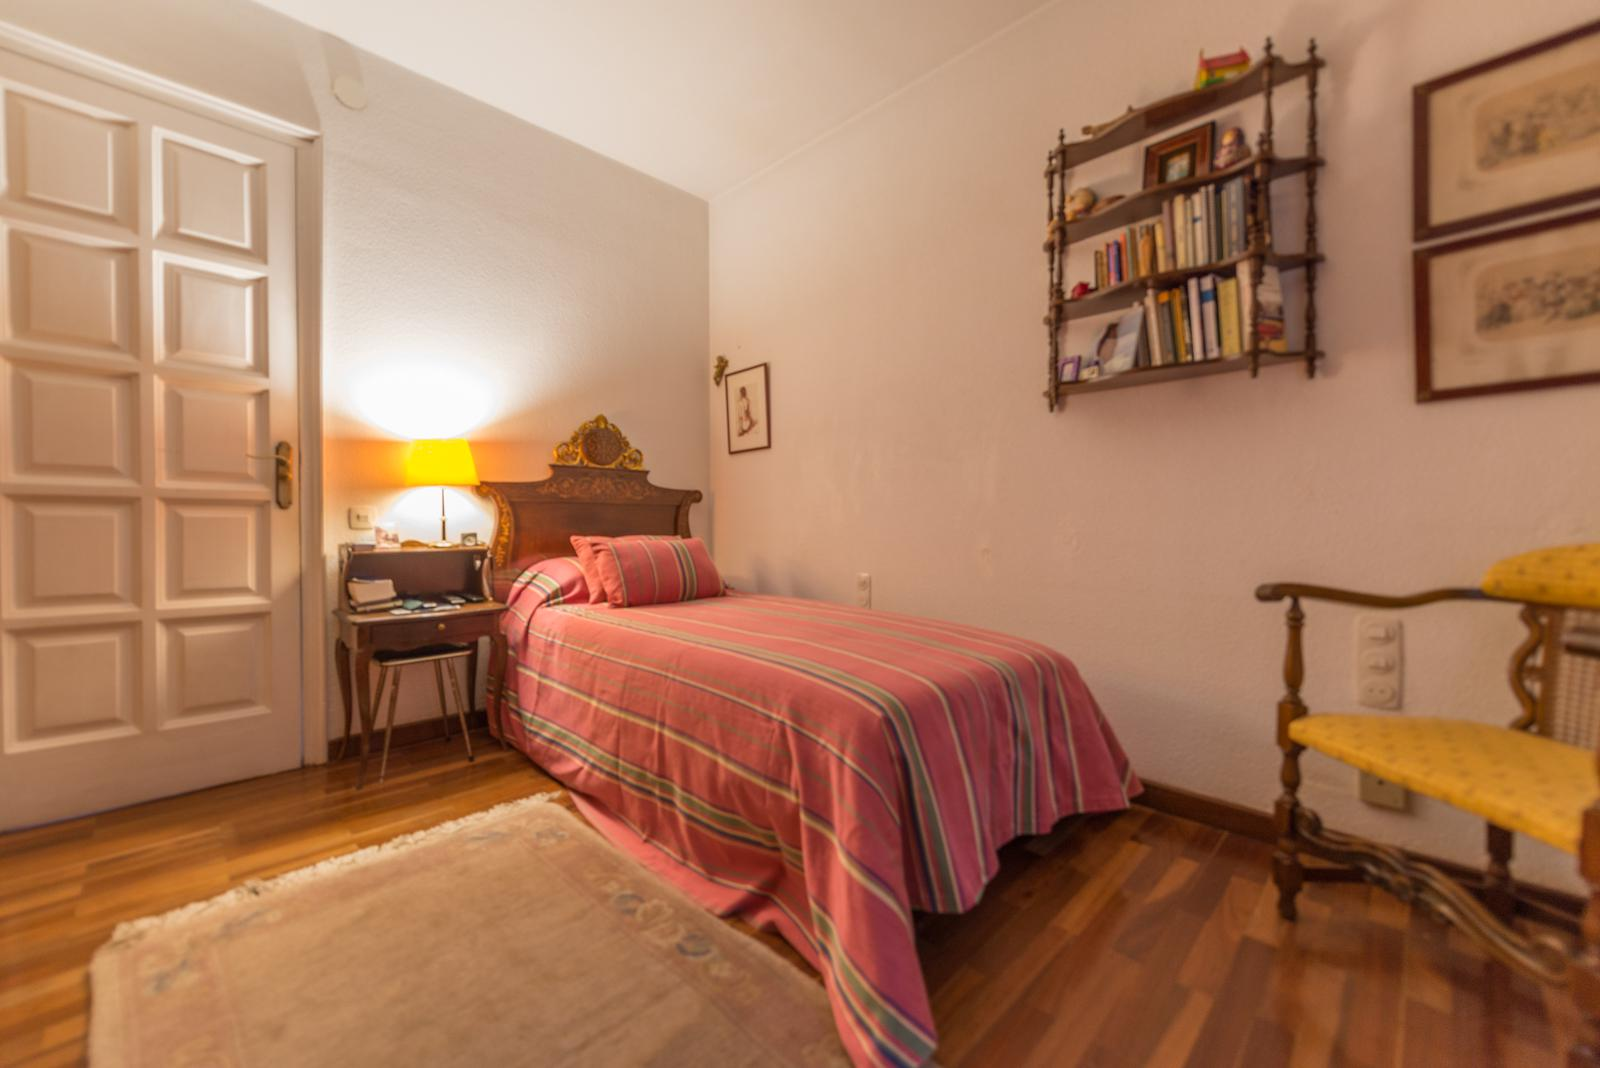 74341 Townhouse for sale in Gràcia, Vallcarca i els Penitents 17